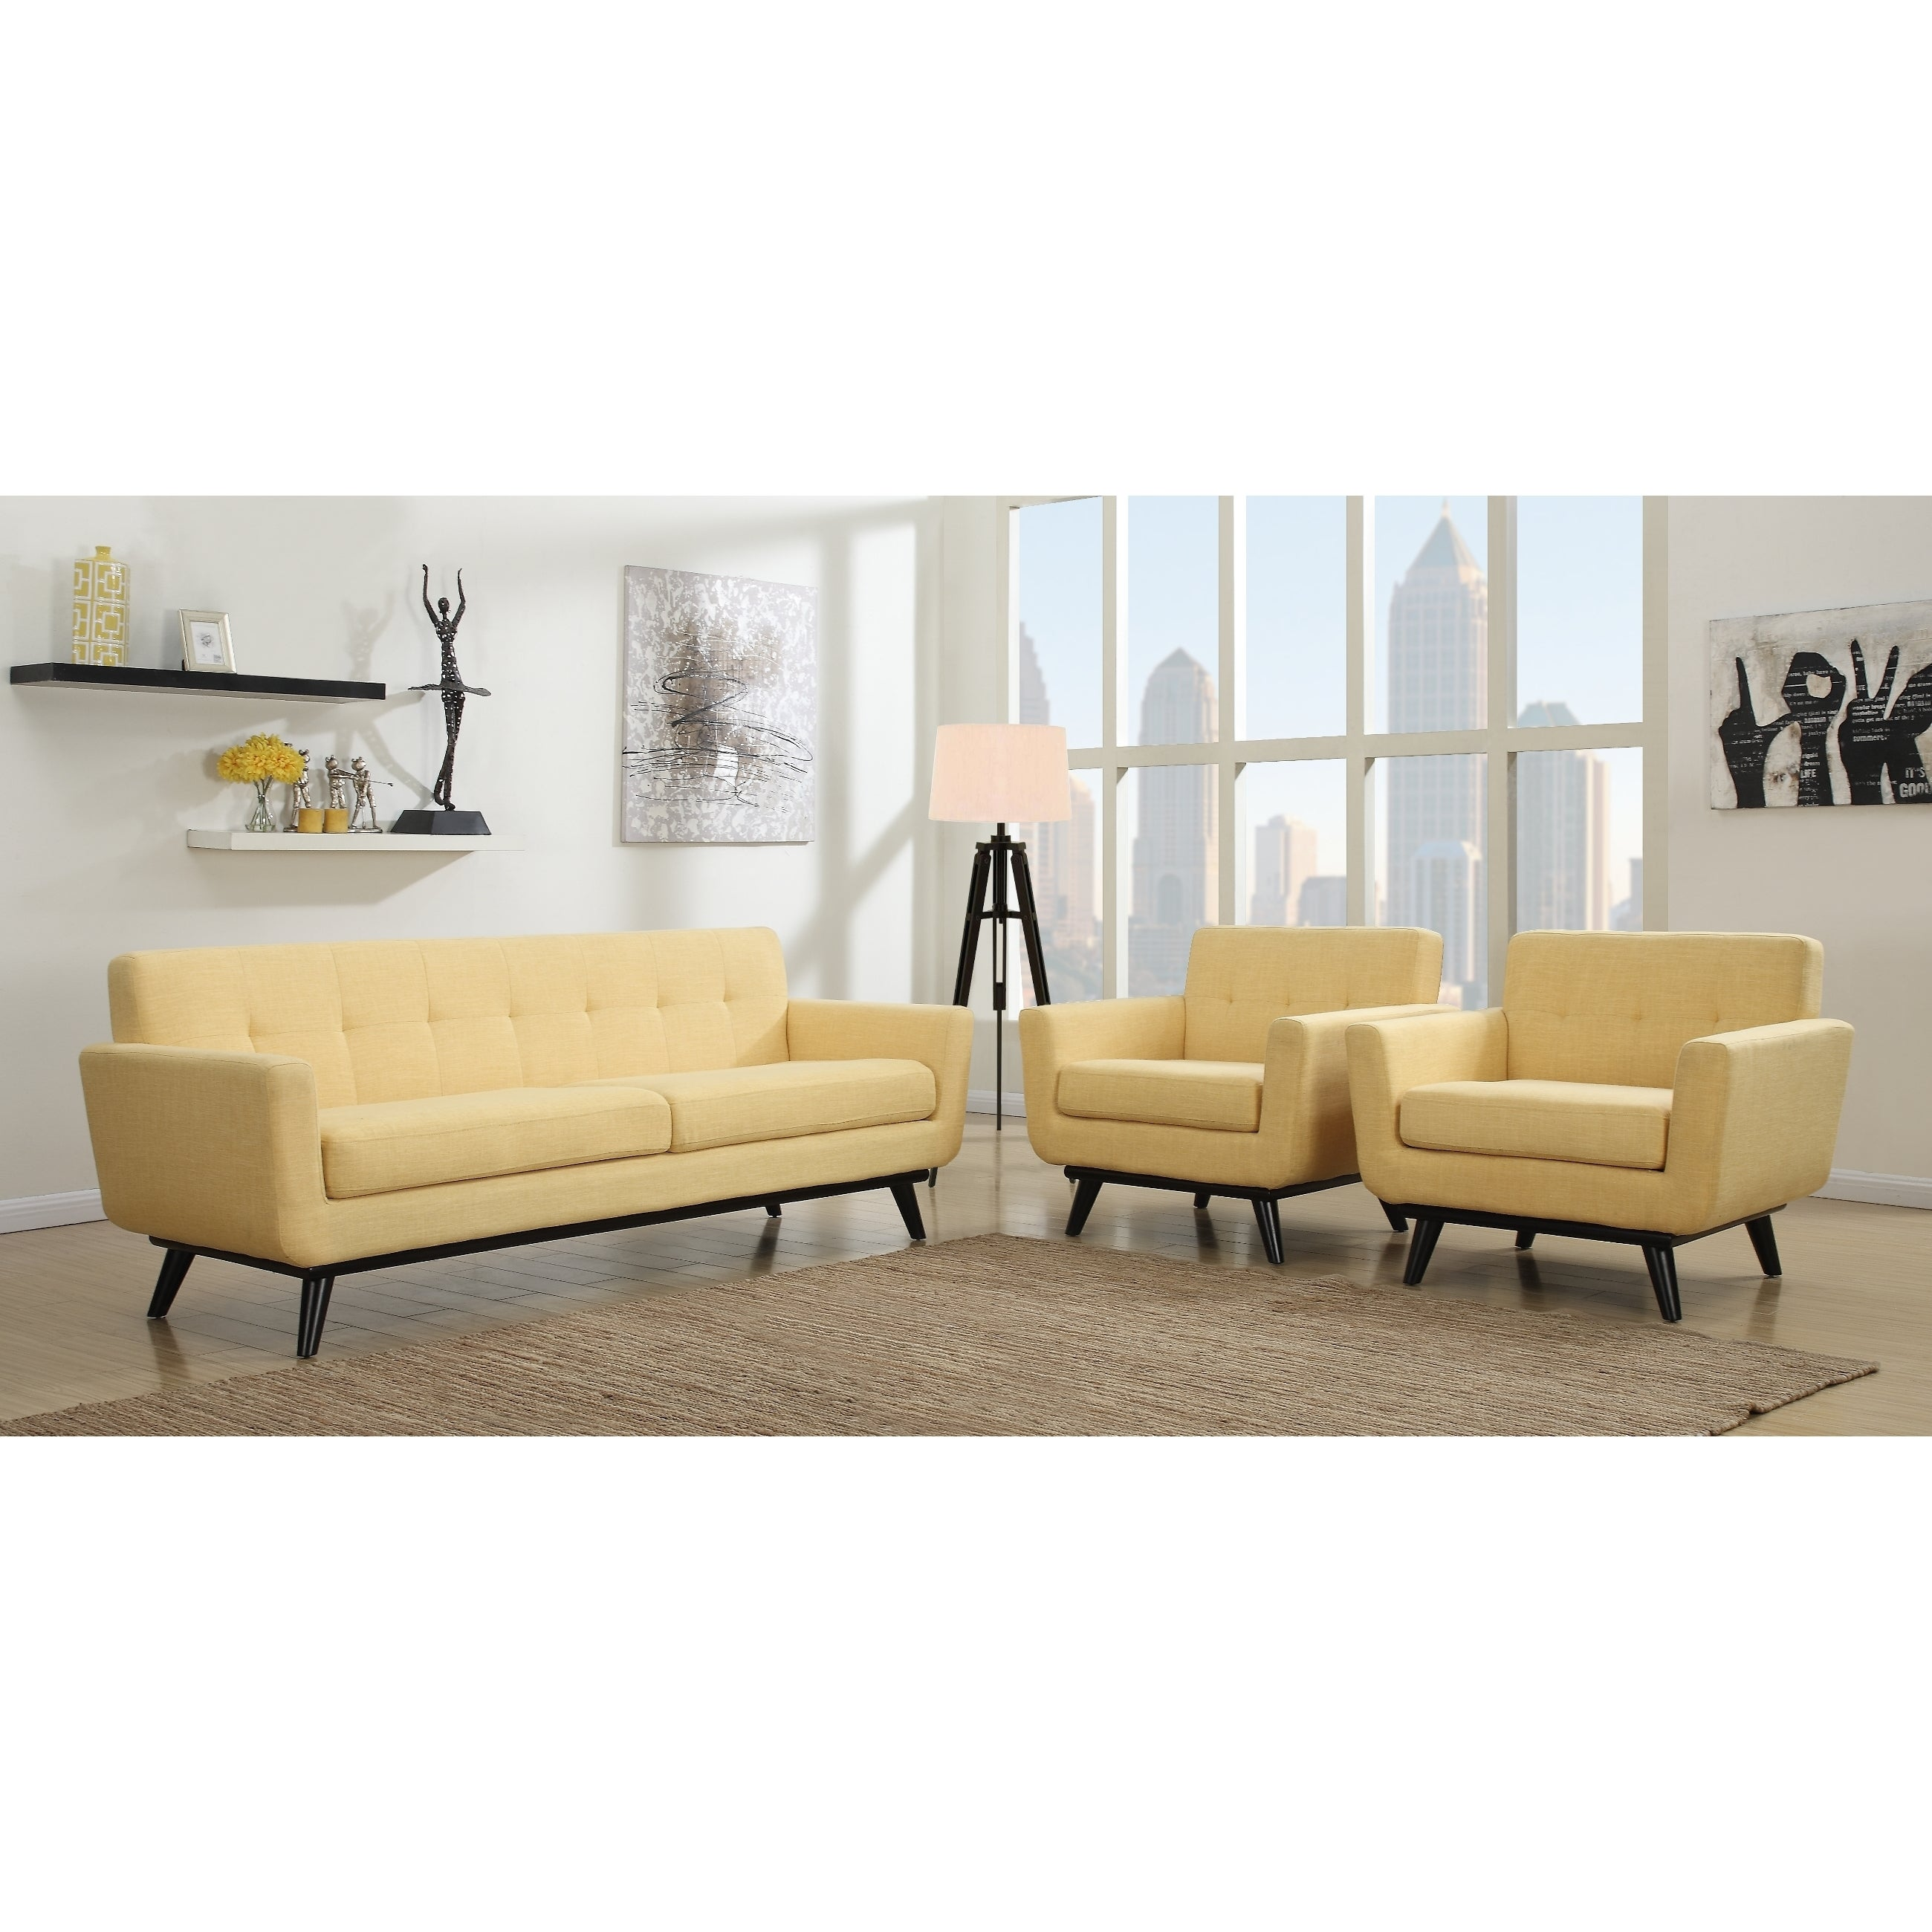 James Mustard Yellow Living Room Set - Free Shipping Today ...